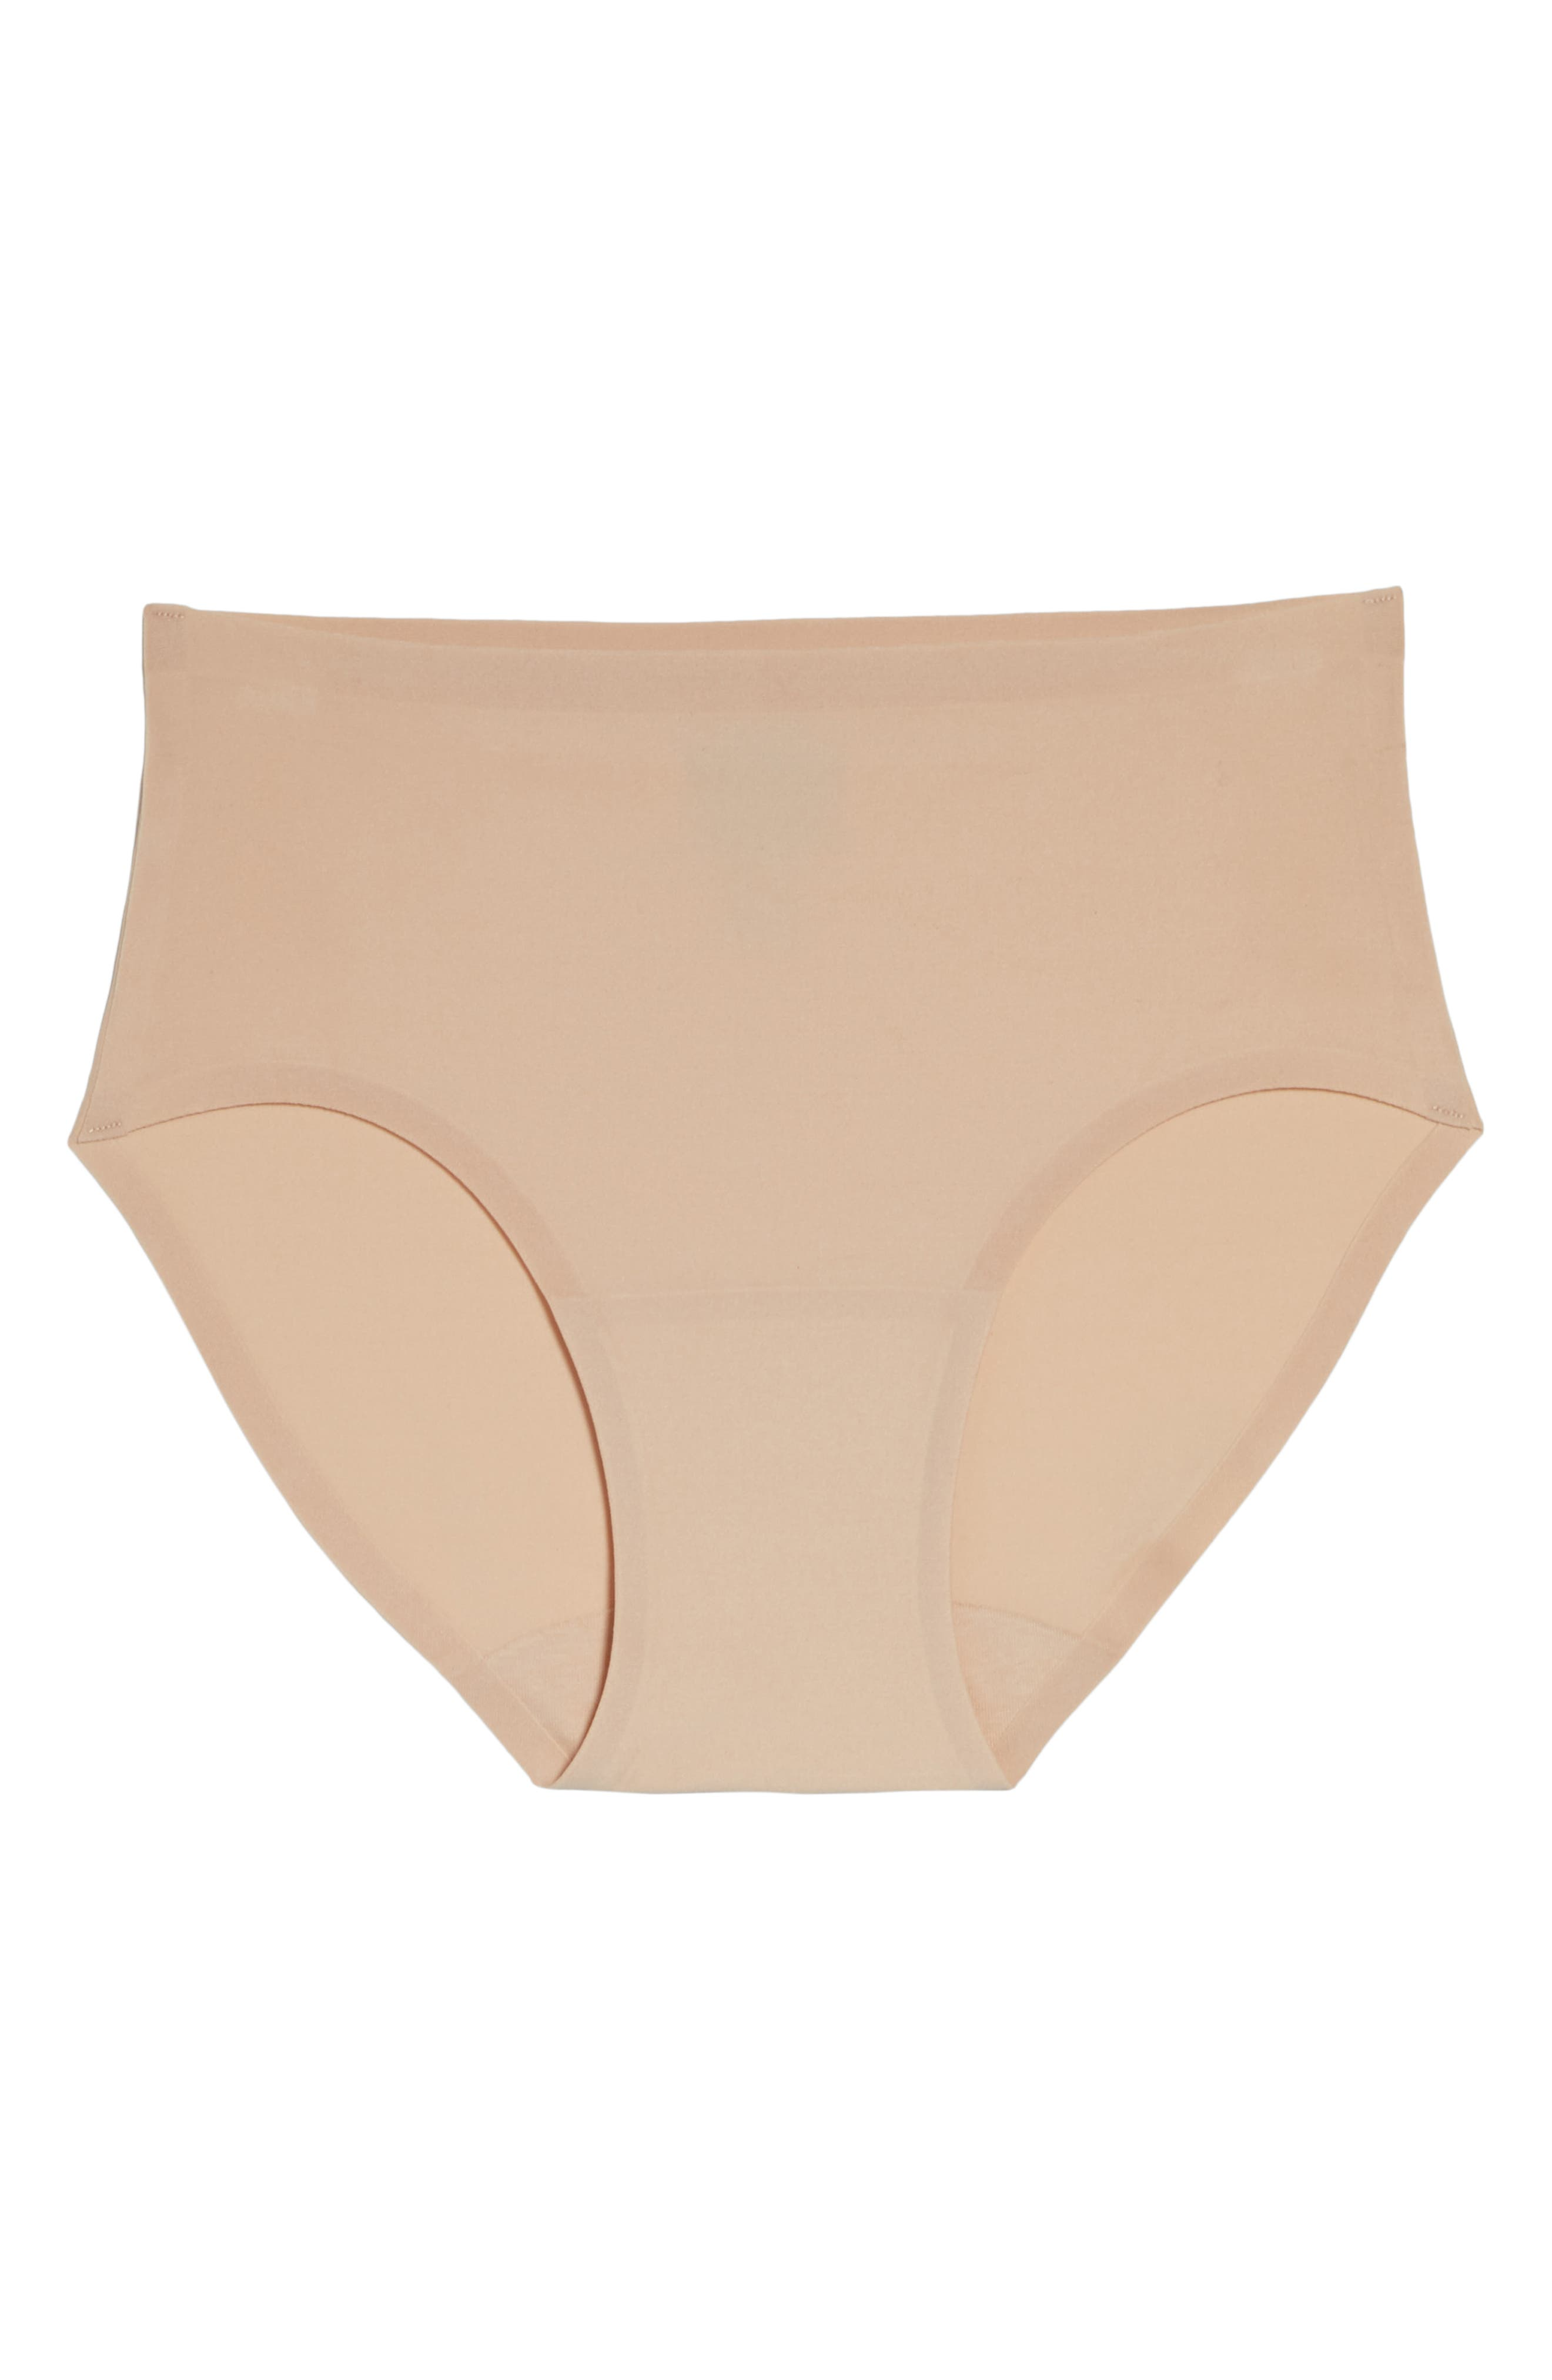 Soft Stretch Seamless Hipster Panties,                             Alternate thumbnail 6, color,                             NUDE BLUSH